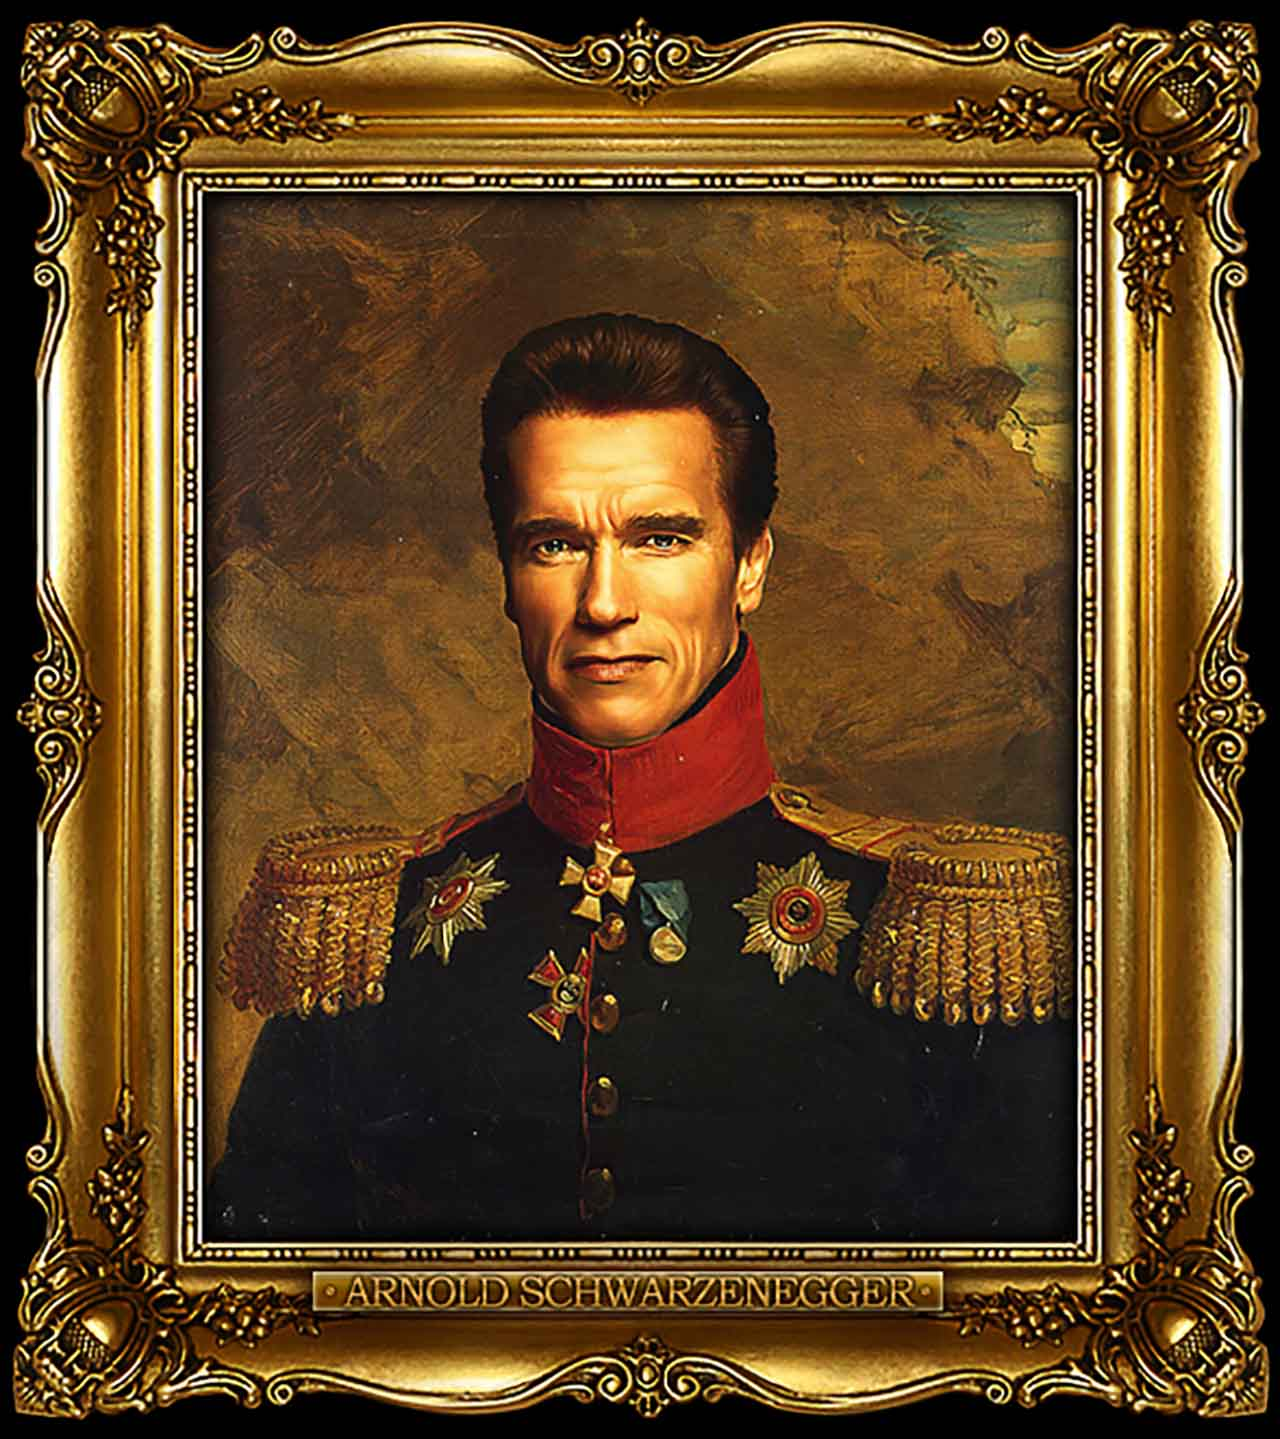 Artist Turns Famous Actors Into Russian Generals - Arnold Schwarzenegger